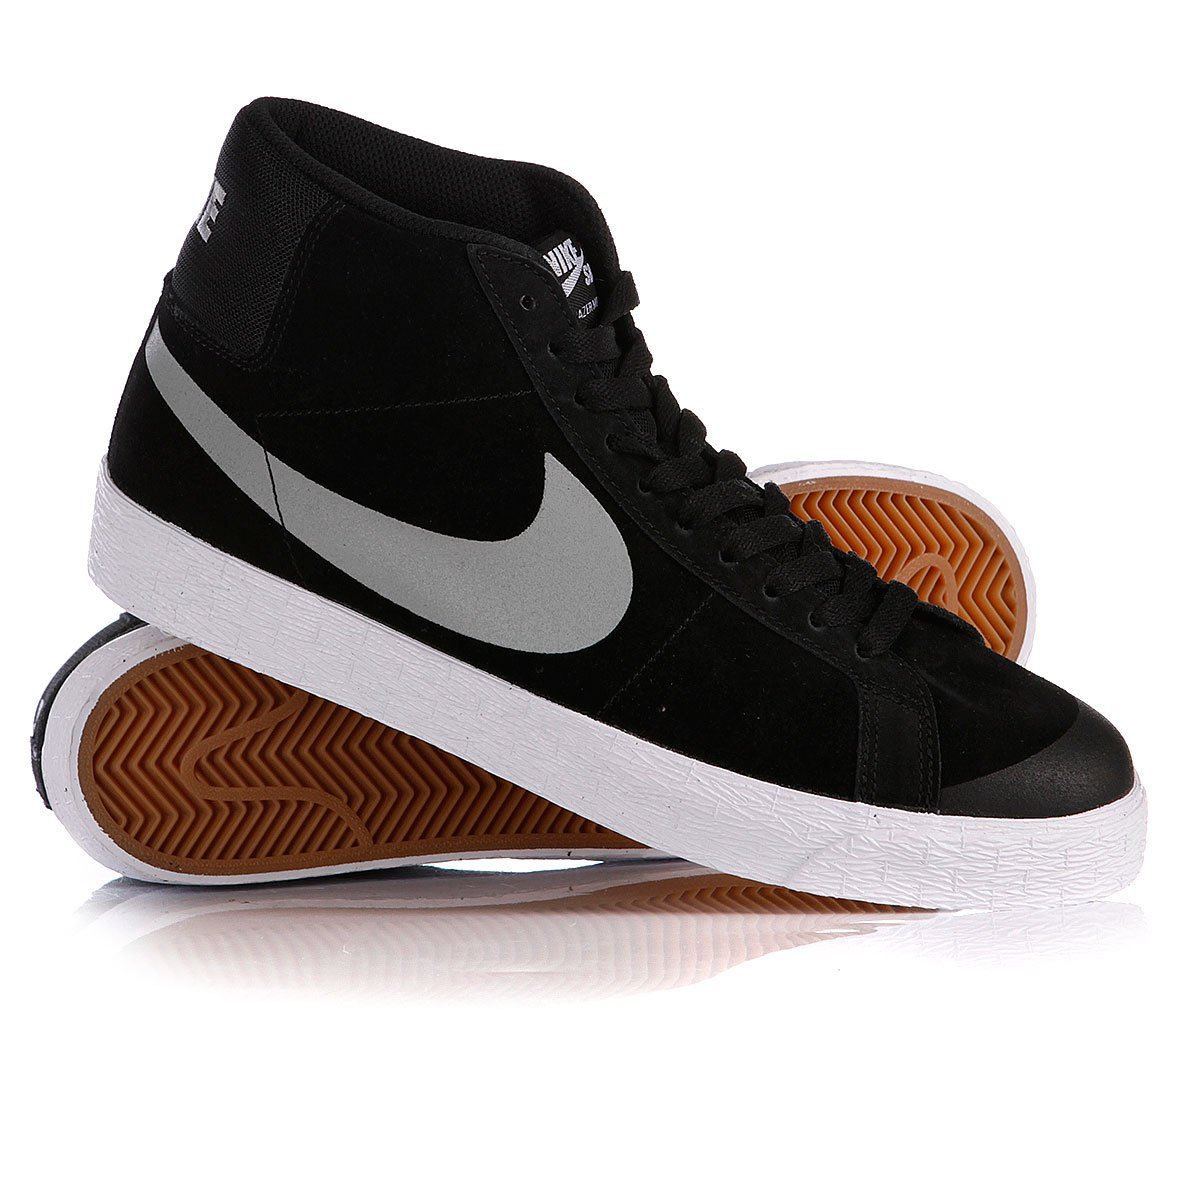 cc500c39 Купить кеды высокие Nike Blazer Sb Premium Se Black/Base Grey ...